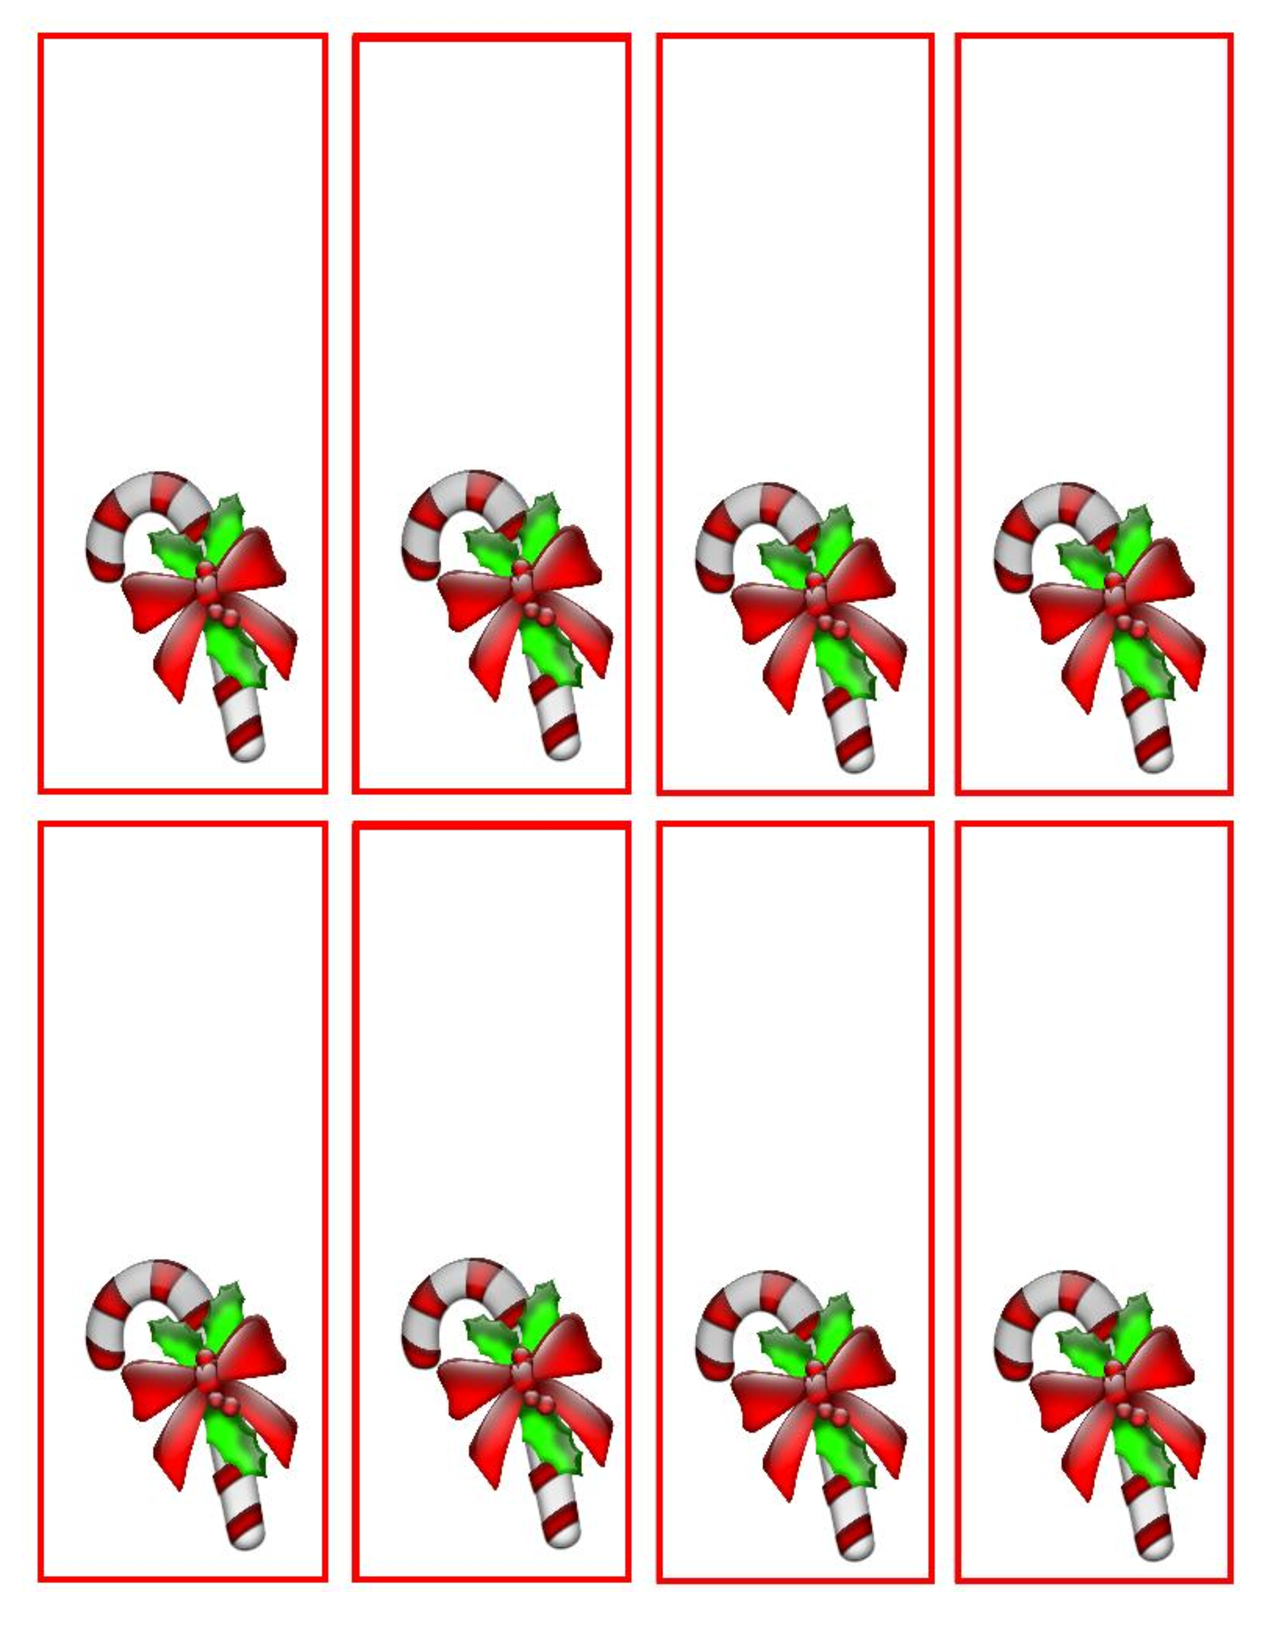 8 Best Images of Printable Candy Cane Gram Templates ...